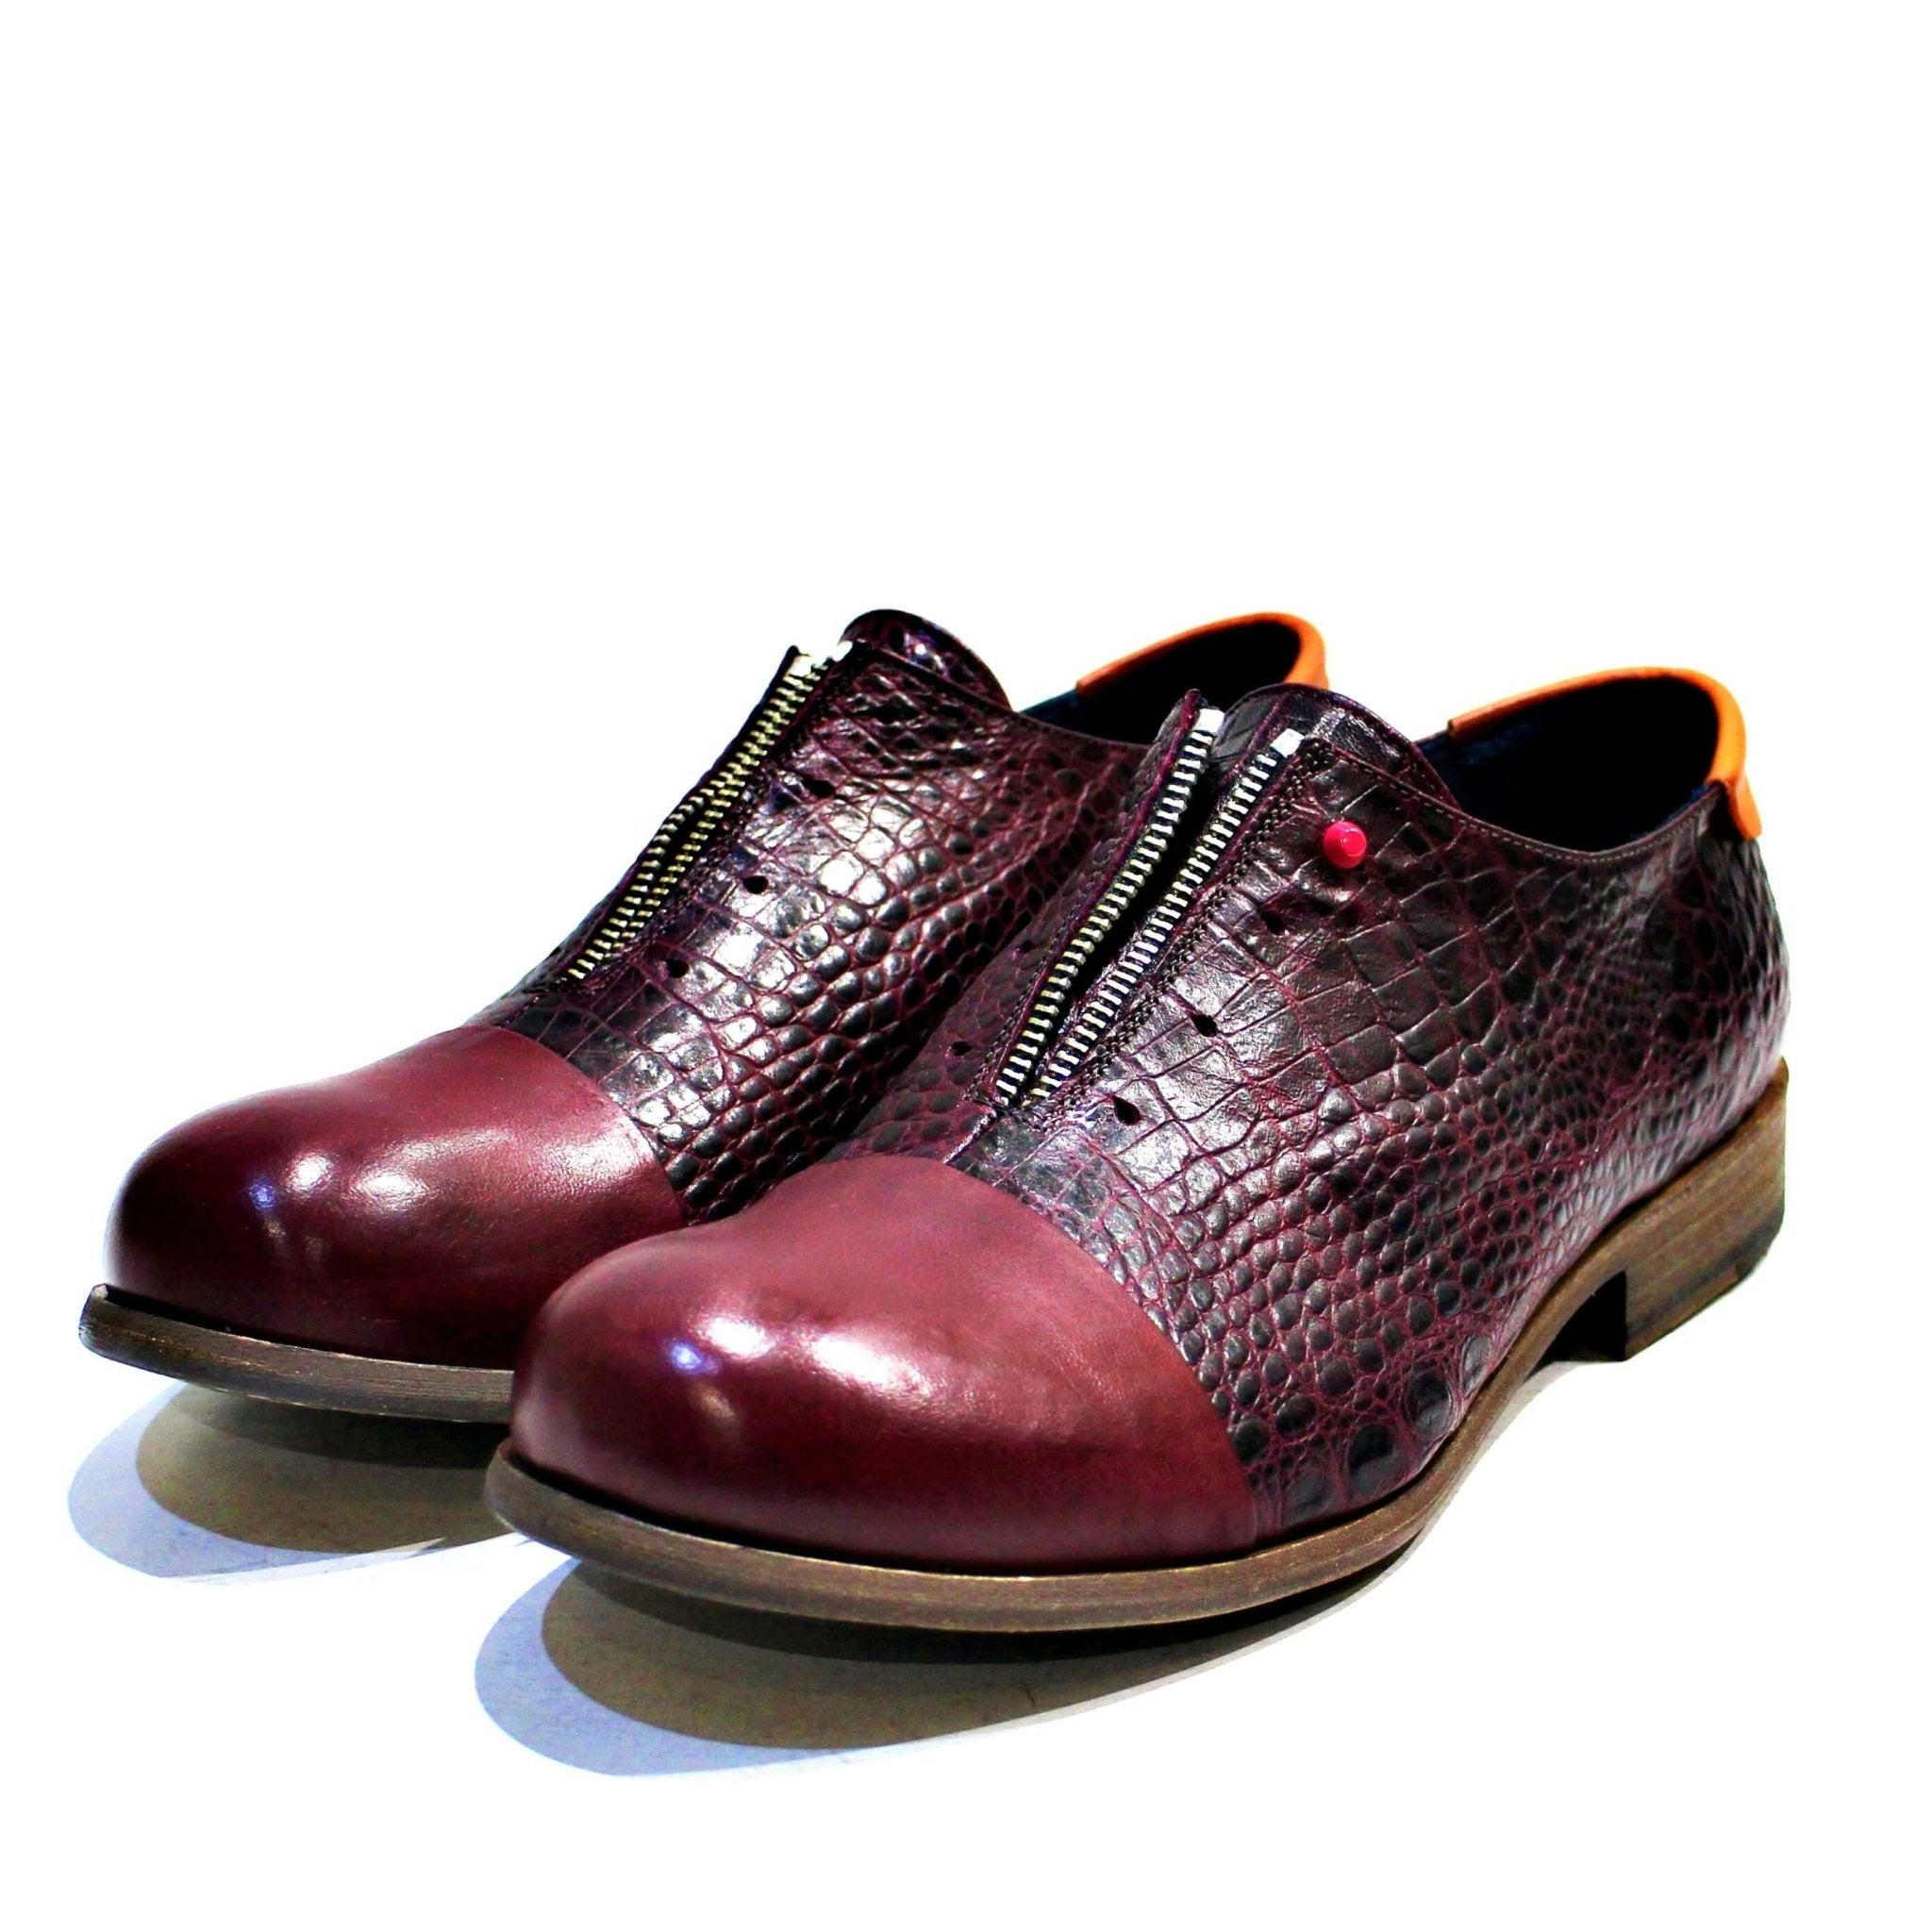 Pisa Bordeaux Oxford Shoes - The Clothing LoungePINTTA